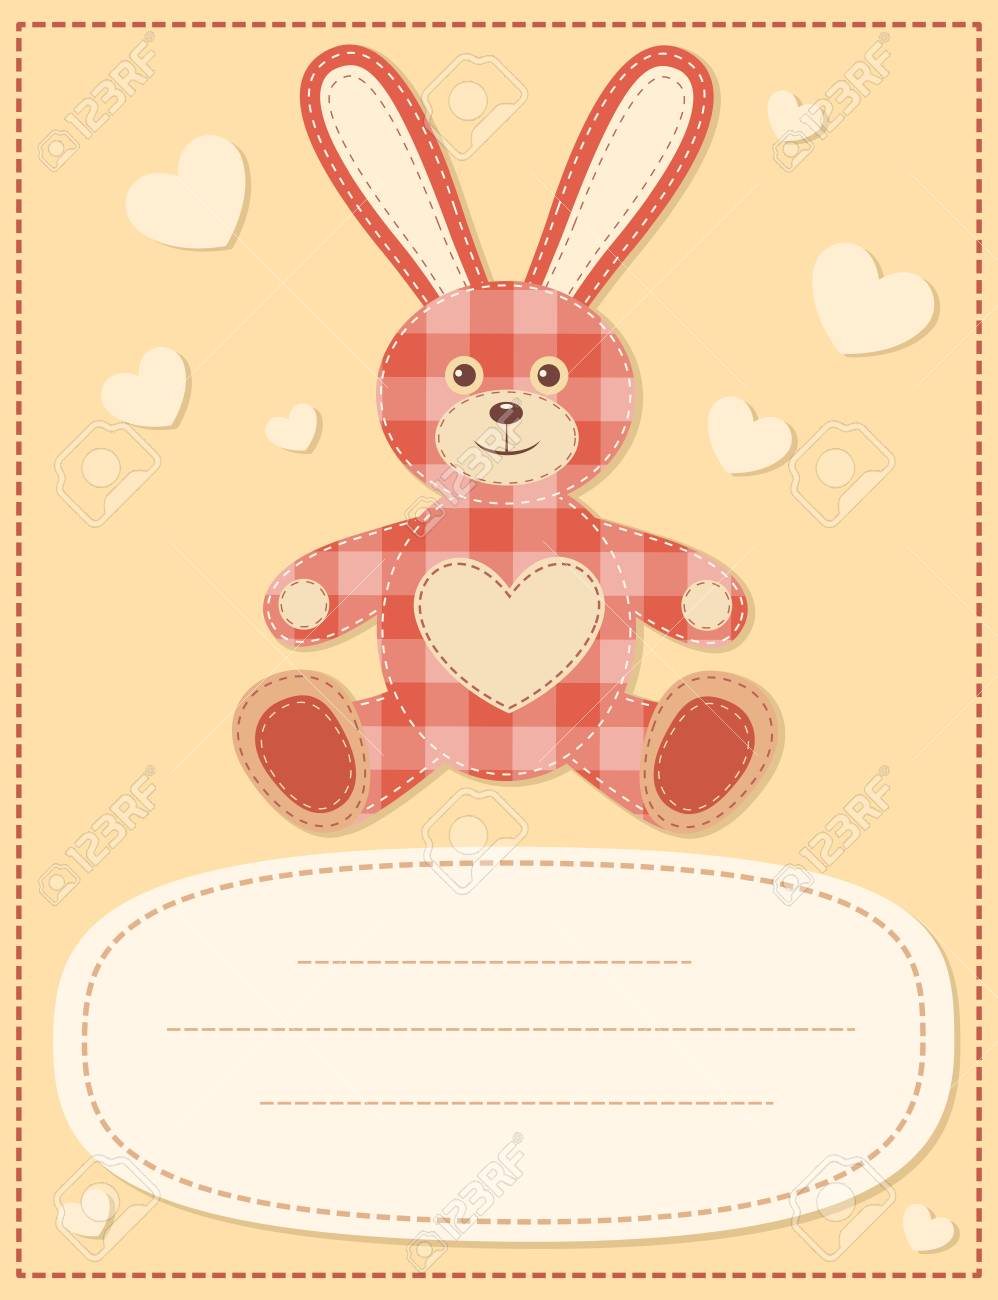 Card with the hare for baby shower 2 Stock Vector - 15381605